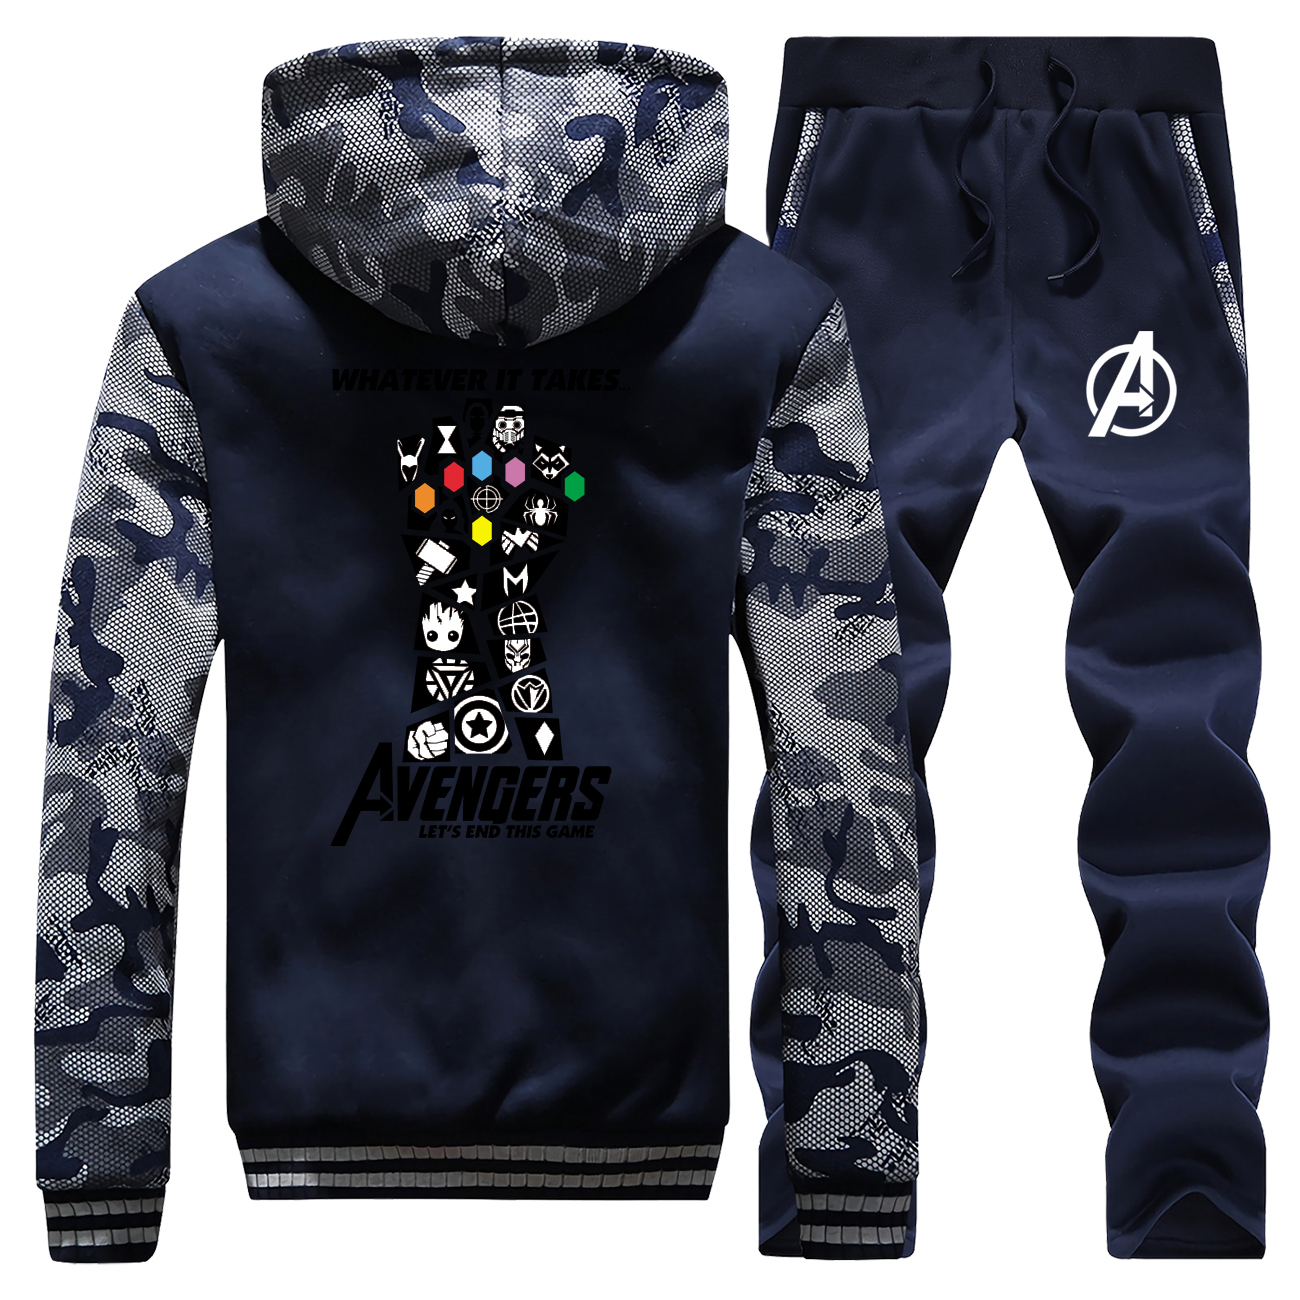 The Avengers Winter Hot Sale Camouflage Mens Hoodie Coat Thick Infinity Gauntlet Sportswear Warm Jackets+Pants 2 Piece Set Suit